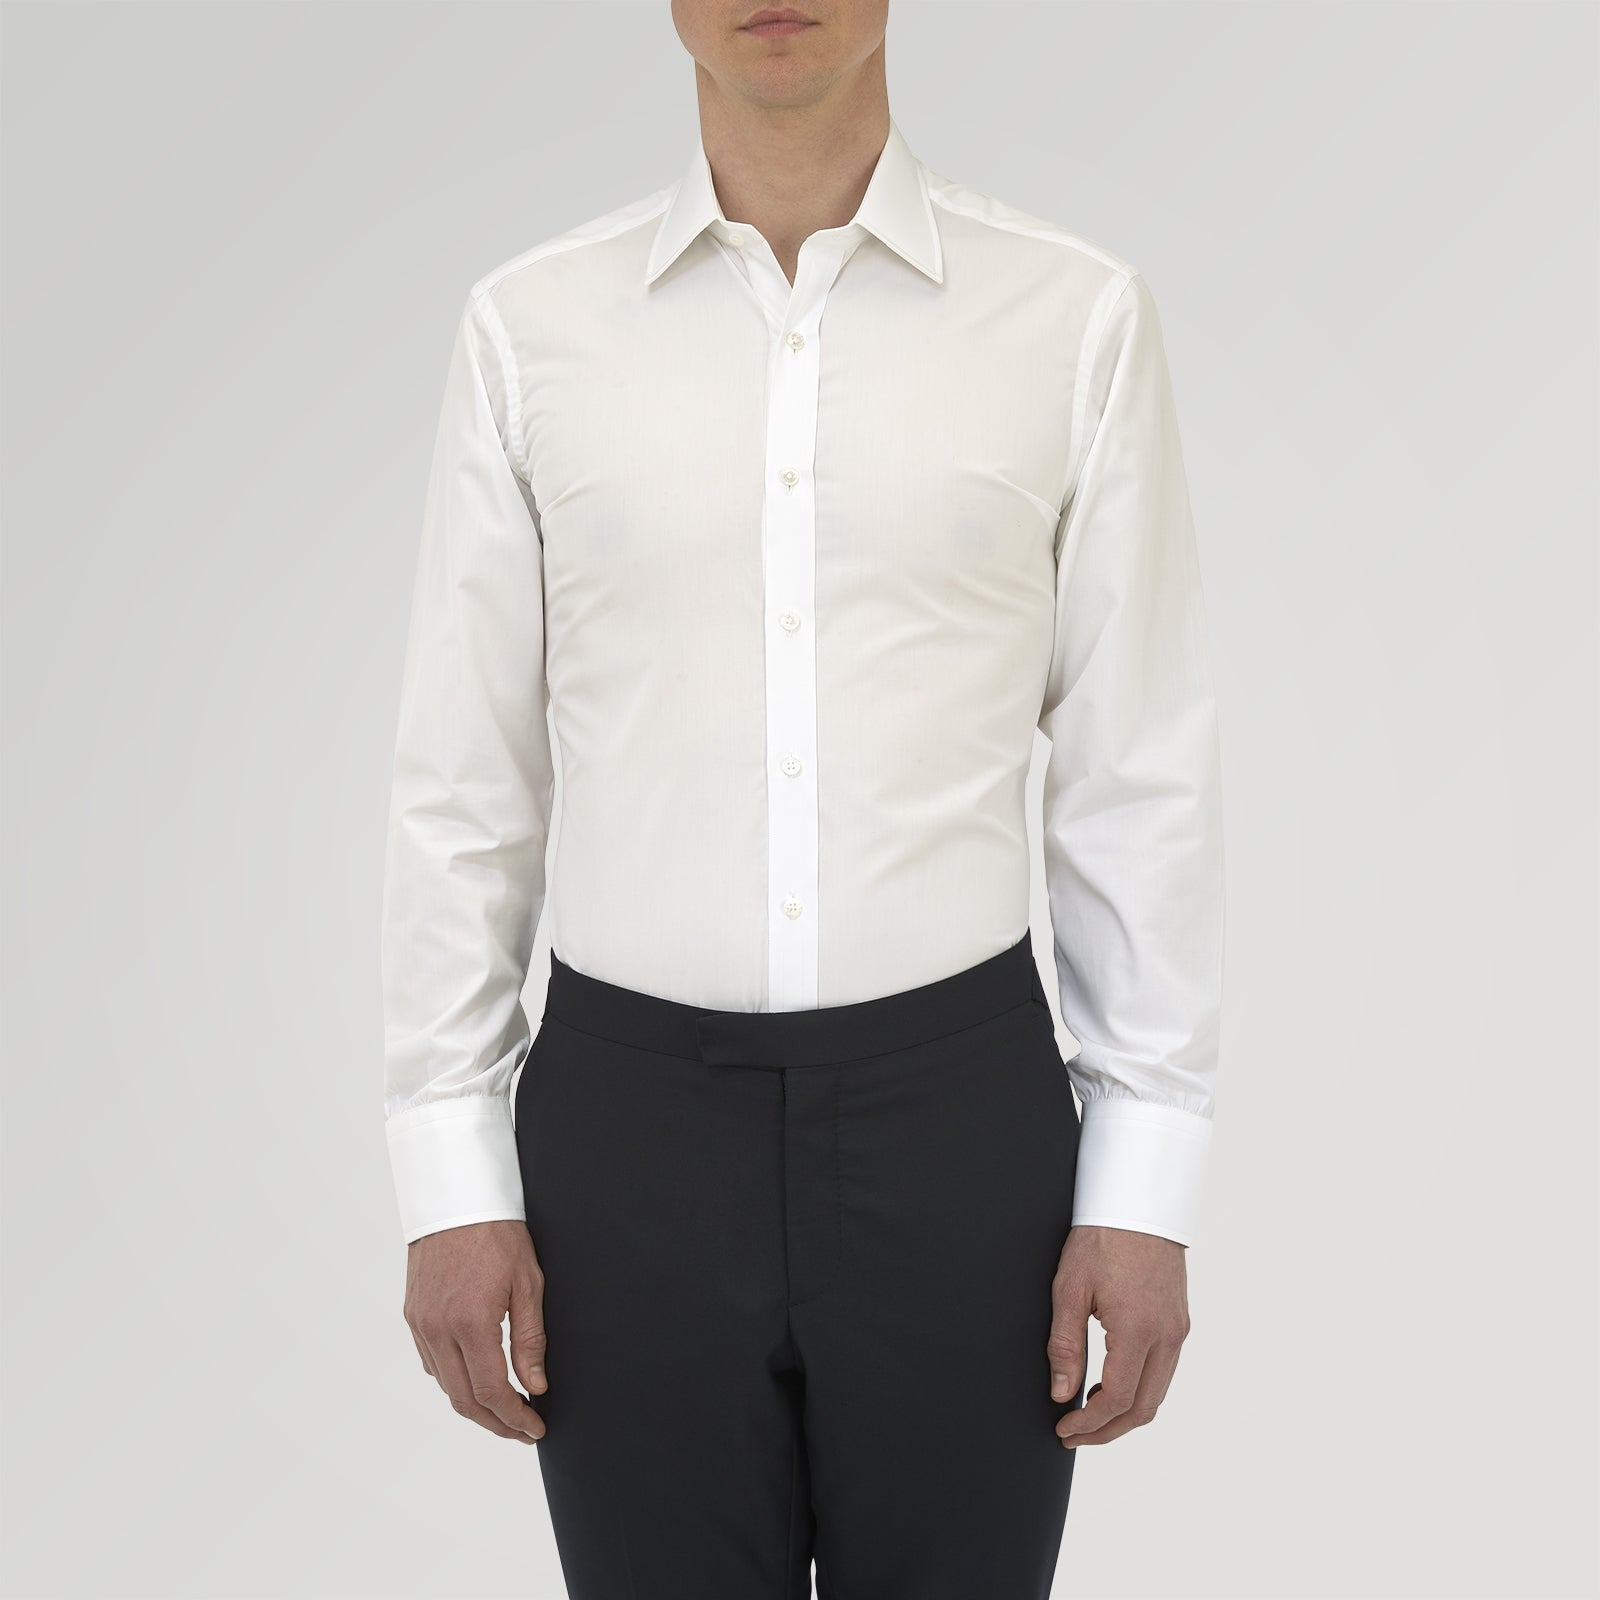 Tailored Fit Two-Fold 120 White Cotton Shirt with Kent Collar and Double Cuffs